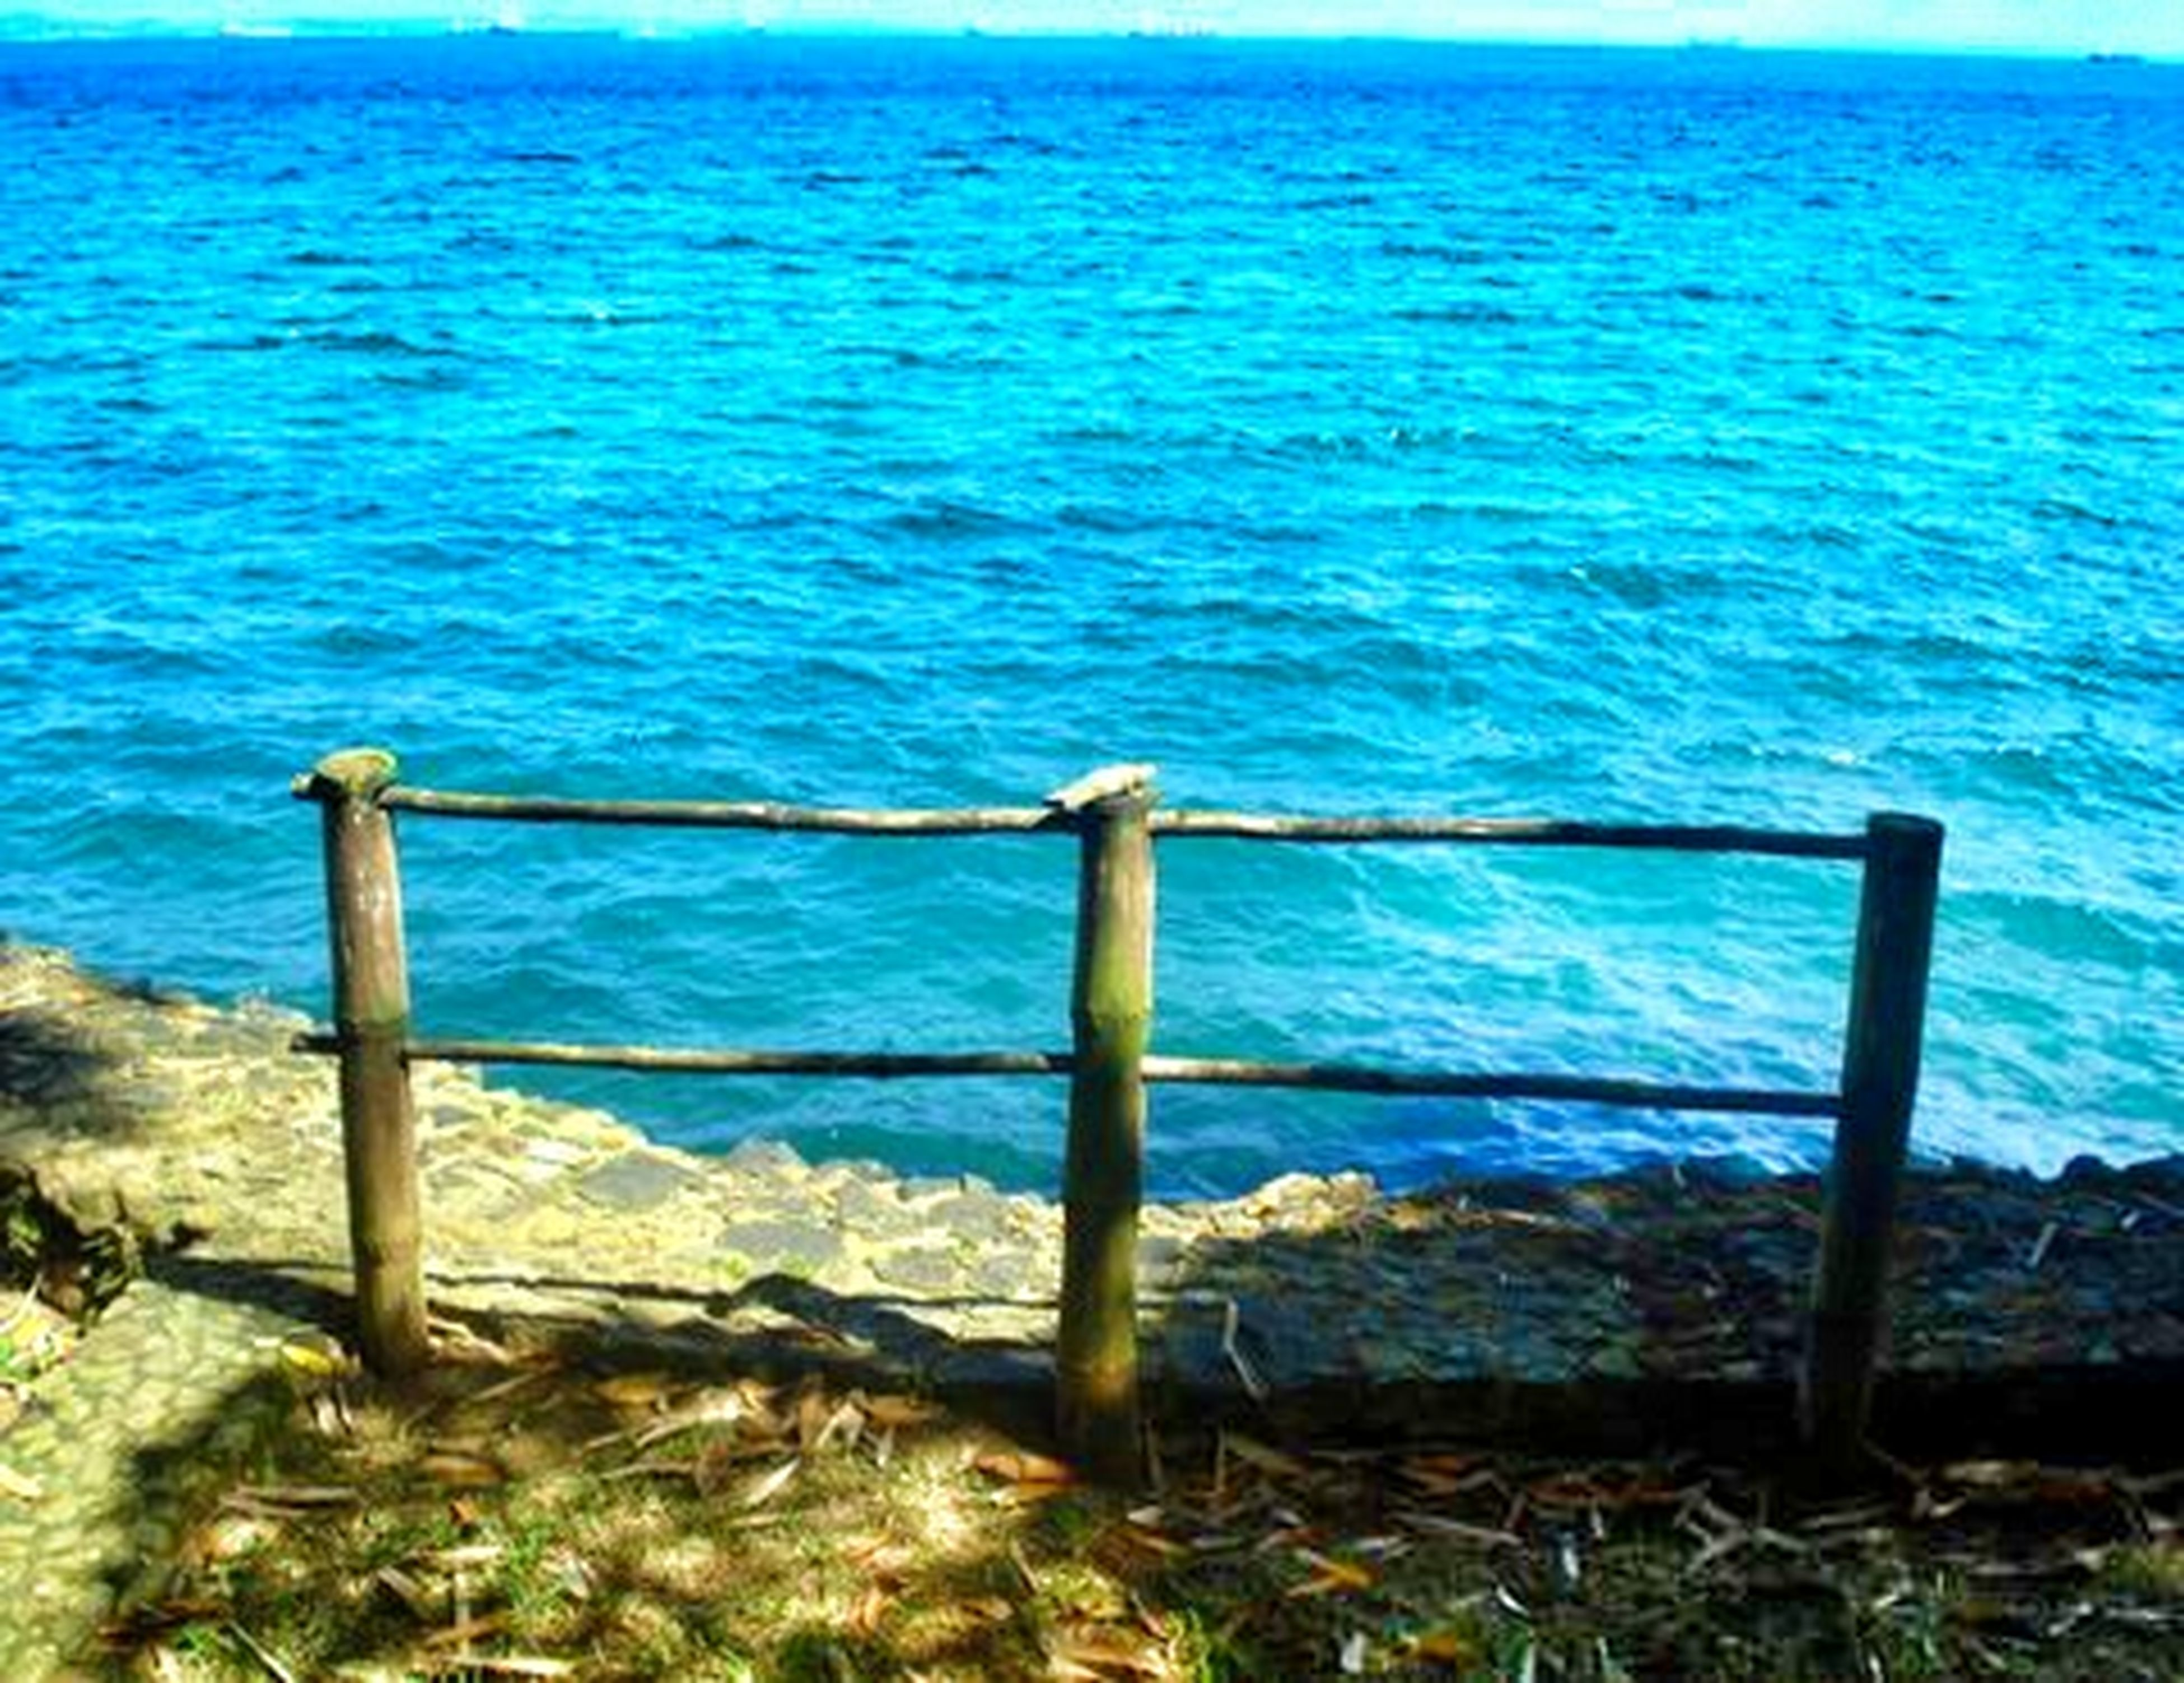 blue, water, tranquility, tranquil scene, sea, grass, scenics, beauty in nature, nature, wood - material, idyllic, day, horizon over water, calm, outdoors, no people, non-urban scene, wooden post, remote, clear sky